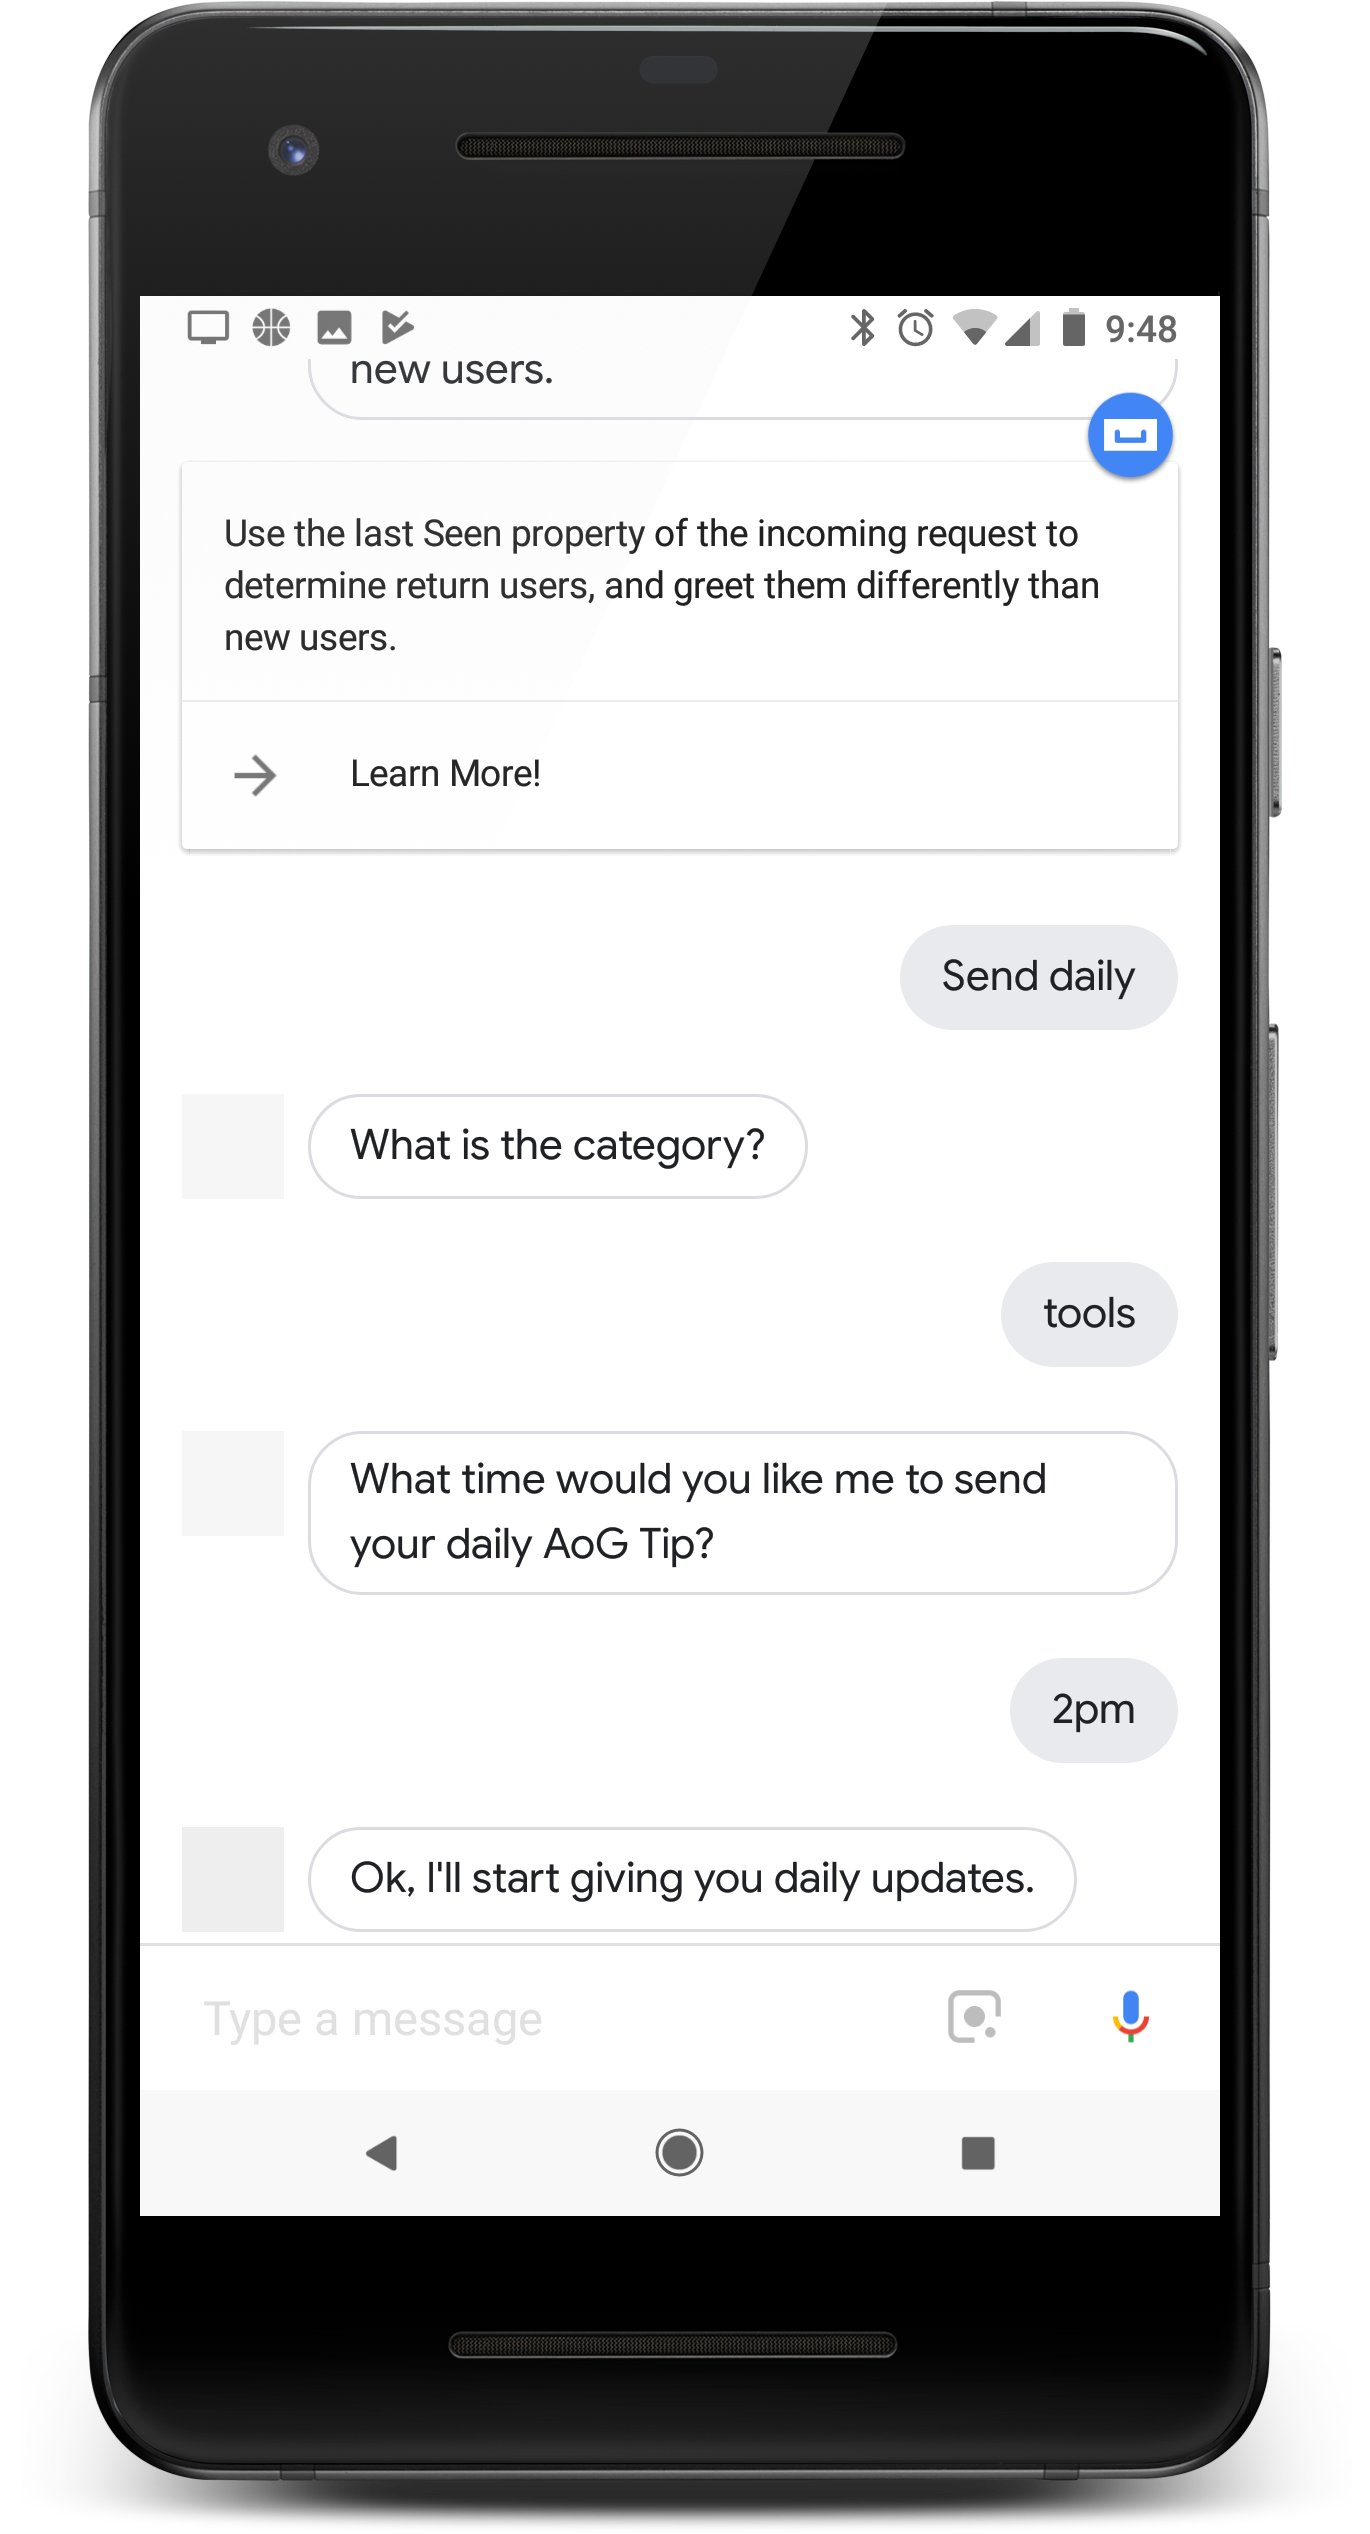 A user subscribing to an Action's daily updates on their phone